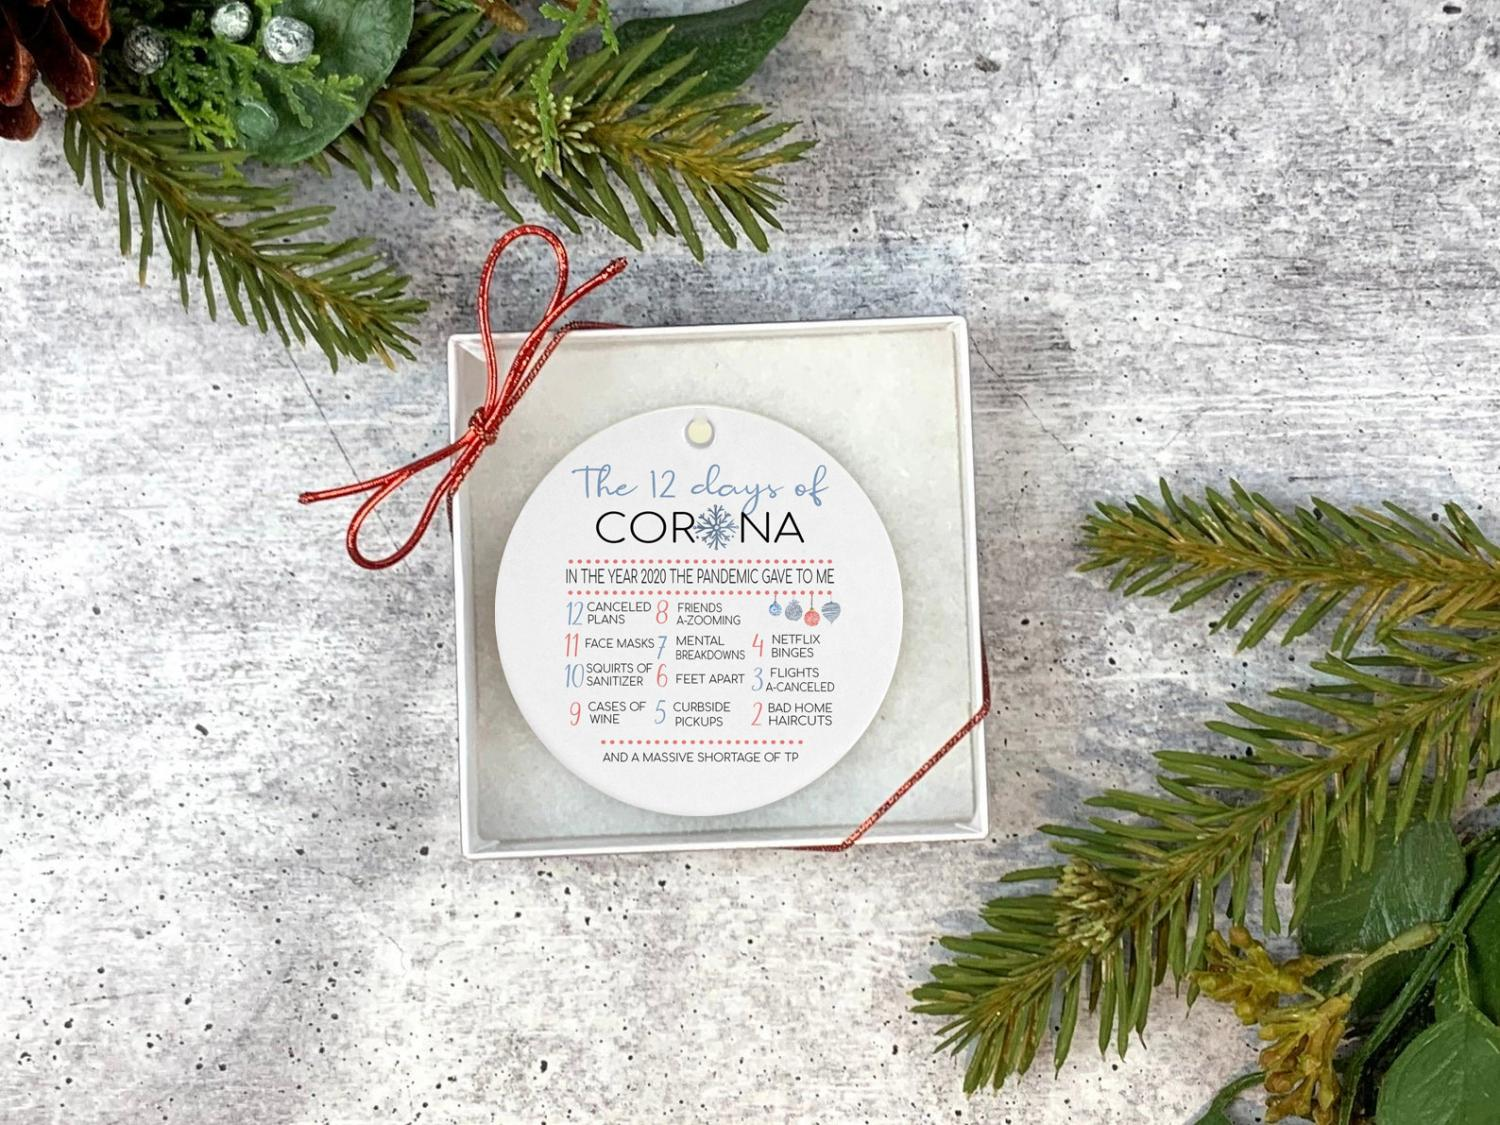 The 12 Days Of Corona Christmas Ornament